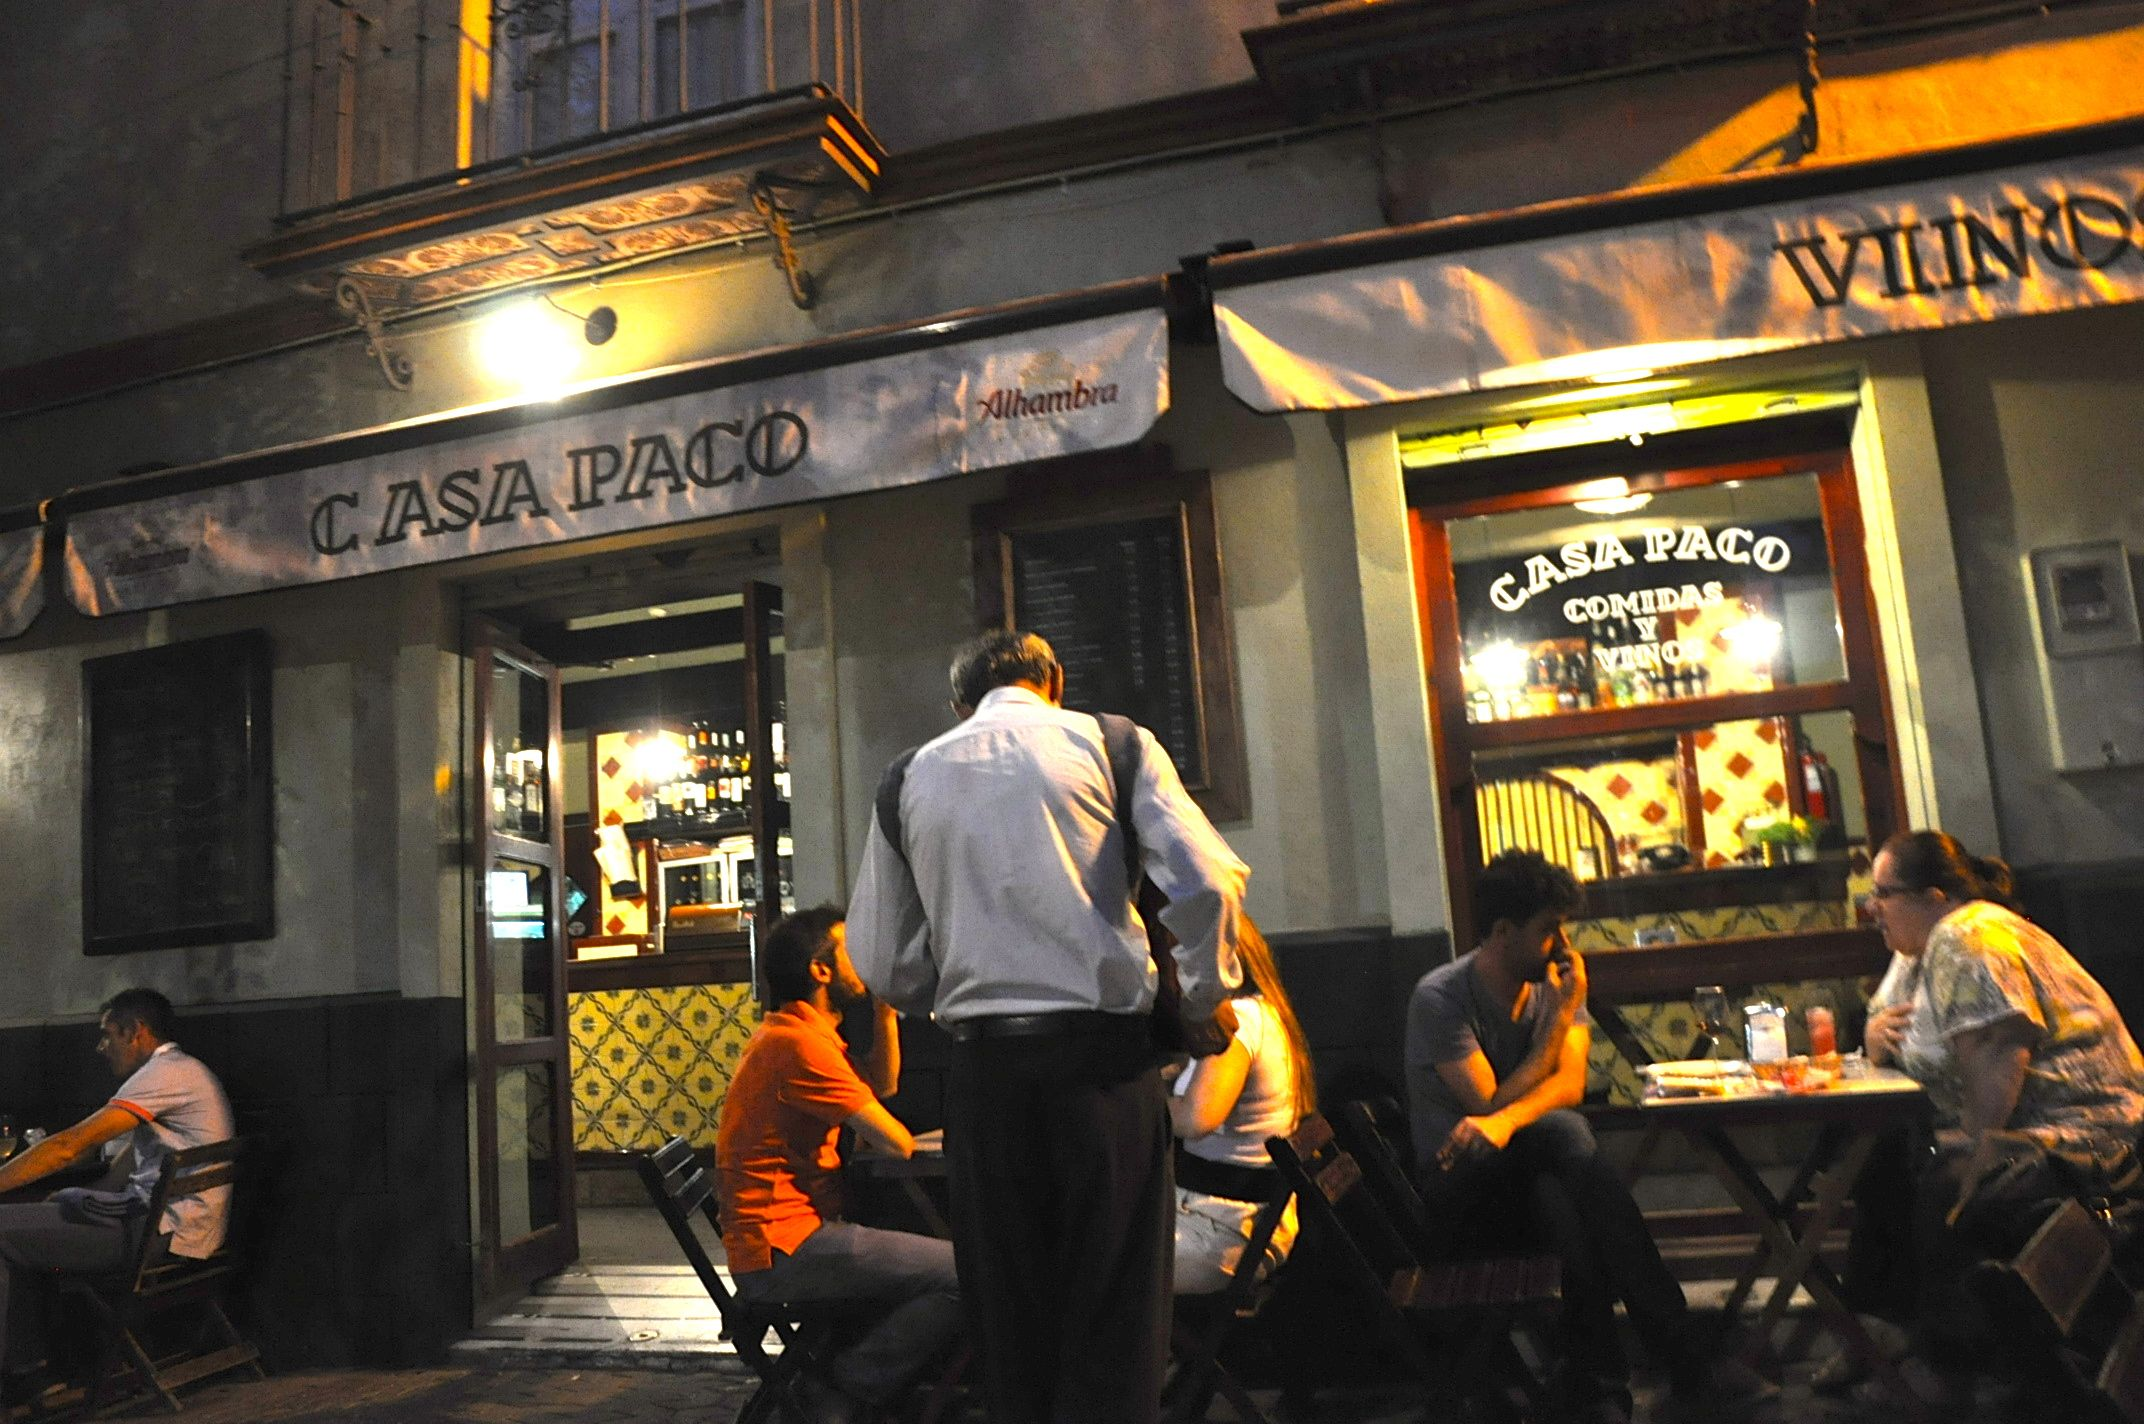 A Cornucopia of Mouth watering Delights that is Tapas